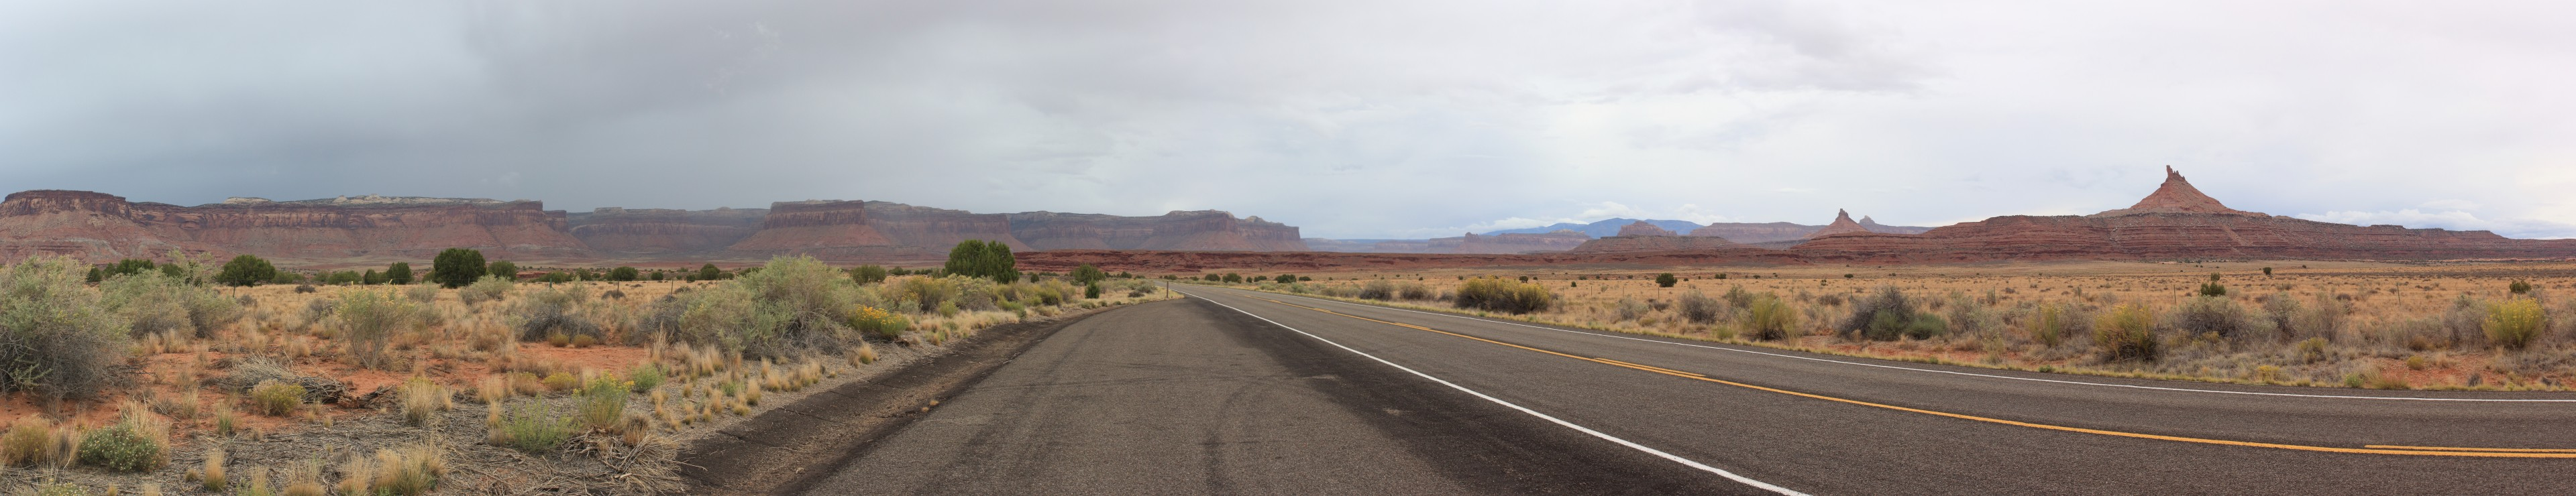 The Road to Needles. Storm weather was just clearing on our way in towards the park. You can see some beautiful landscapes with some 'monument valley' like spires and mesa tops.